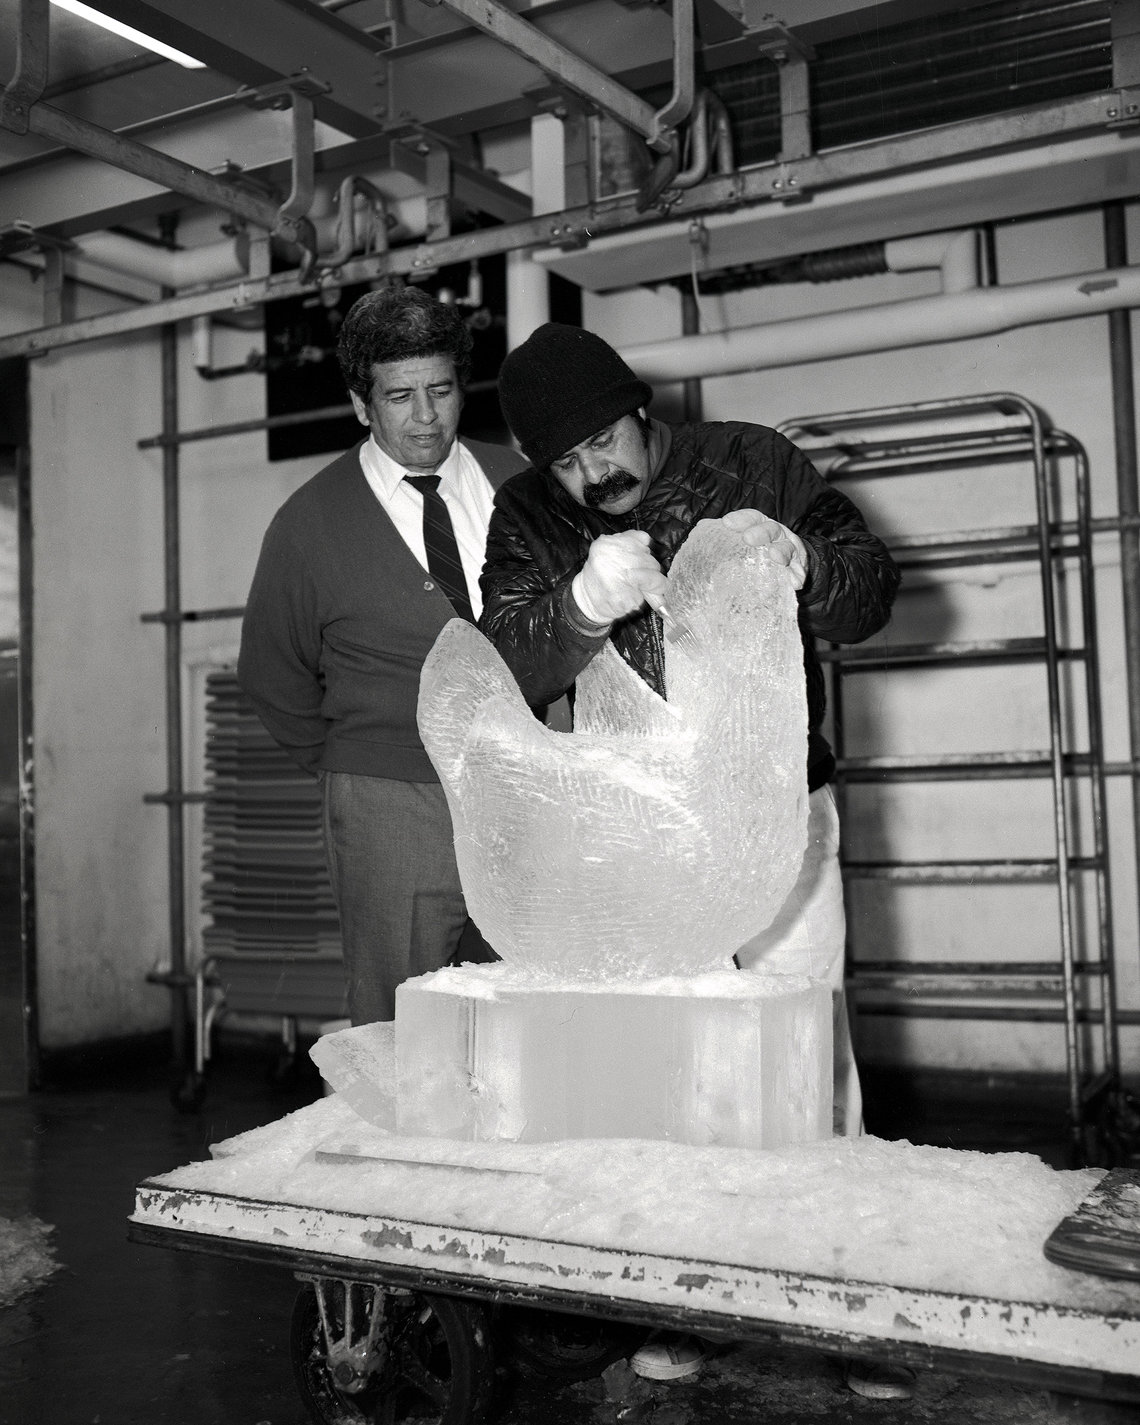 Ice Sculpture, date unknown